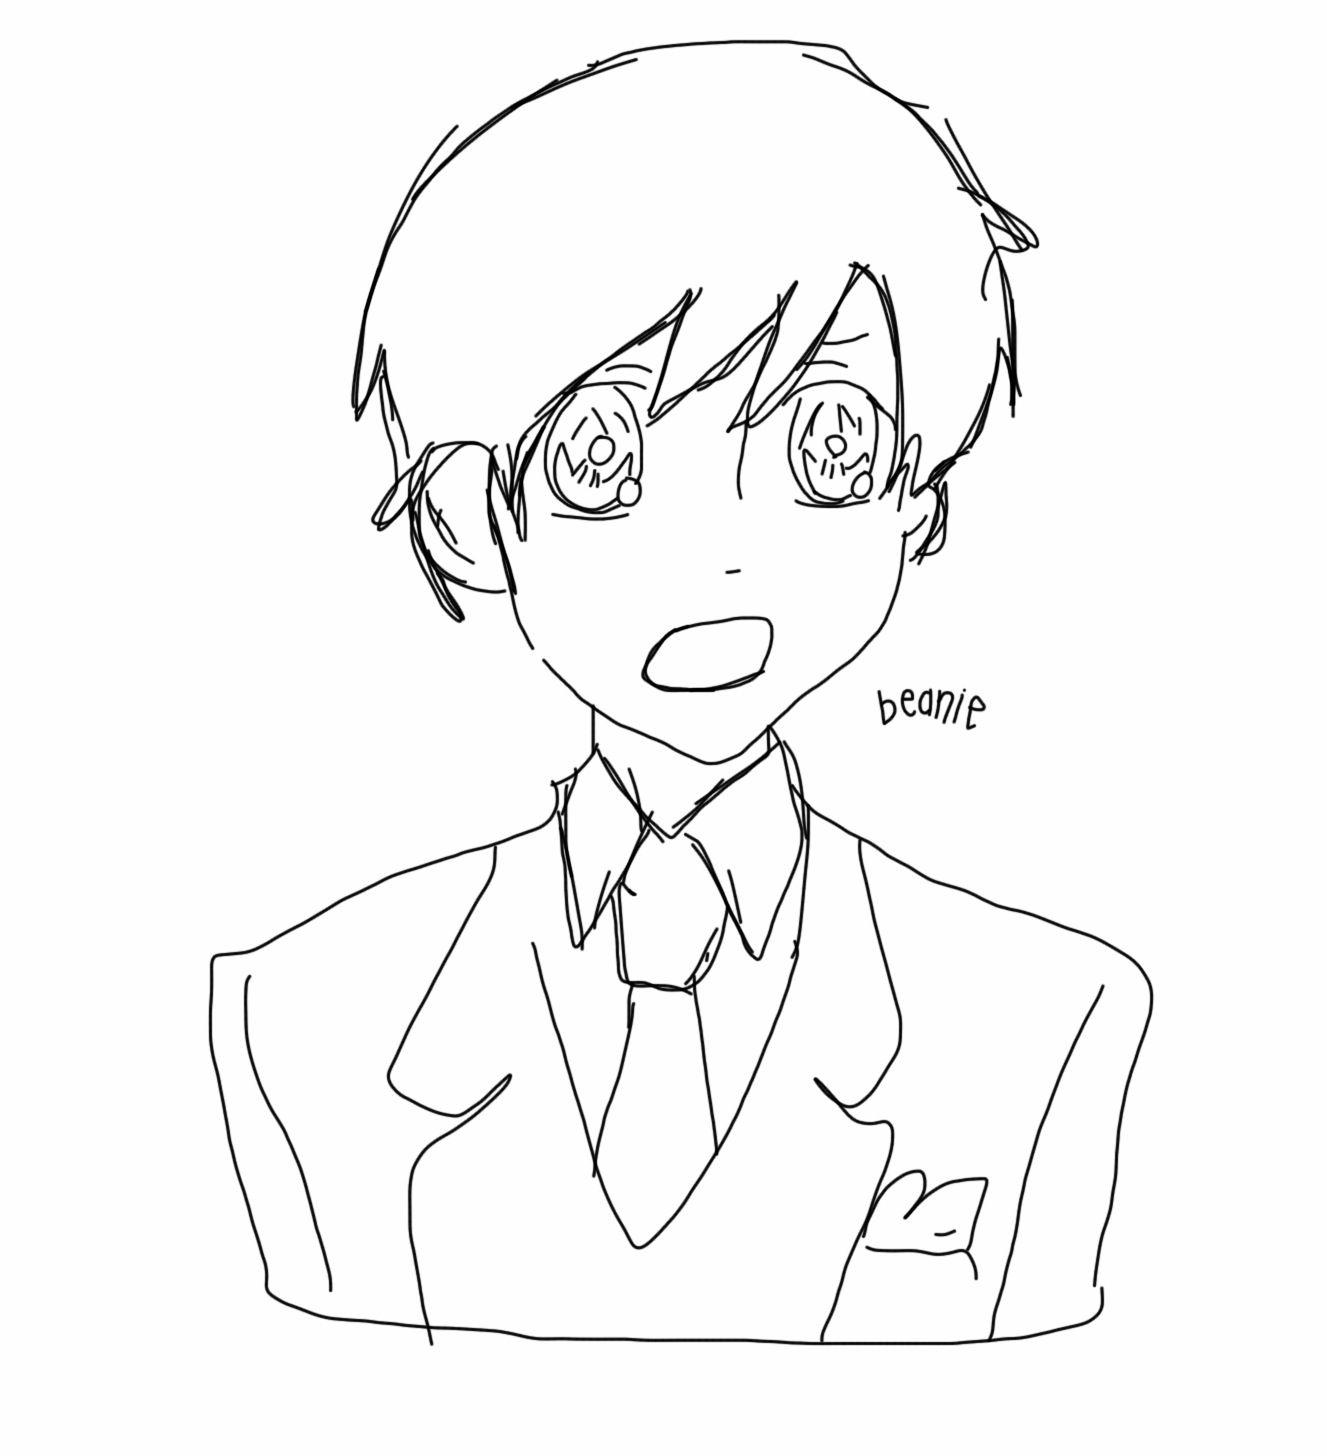 Amazing digital art drawing of Haruhi from Ouran by my